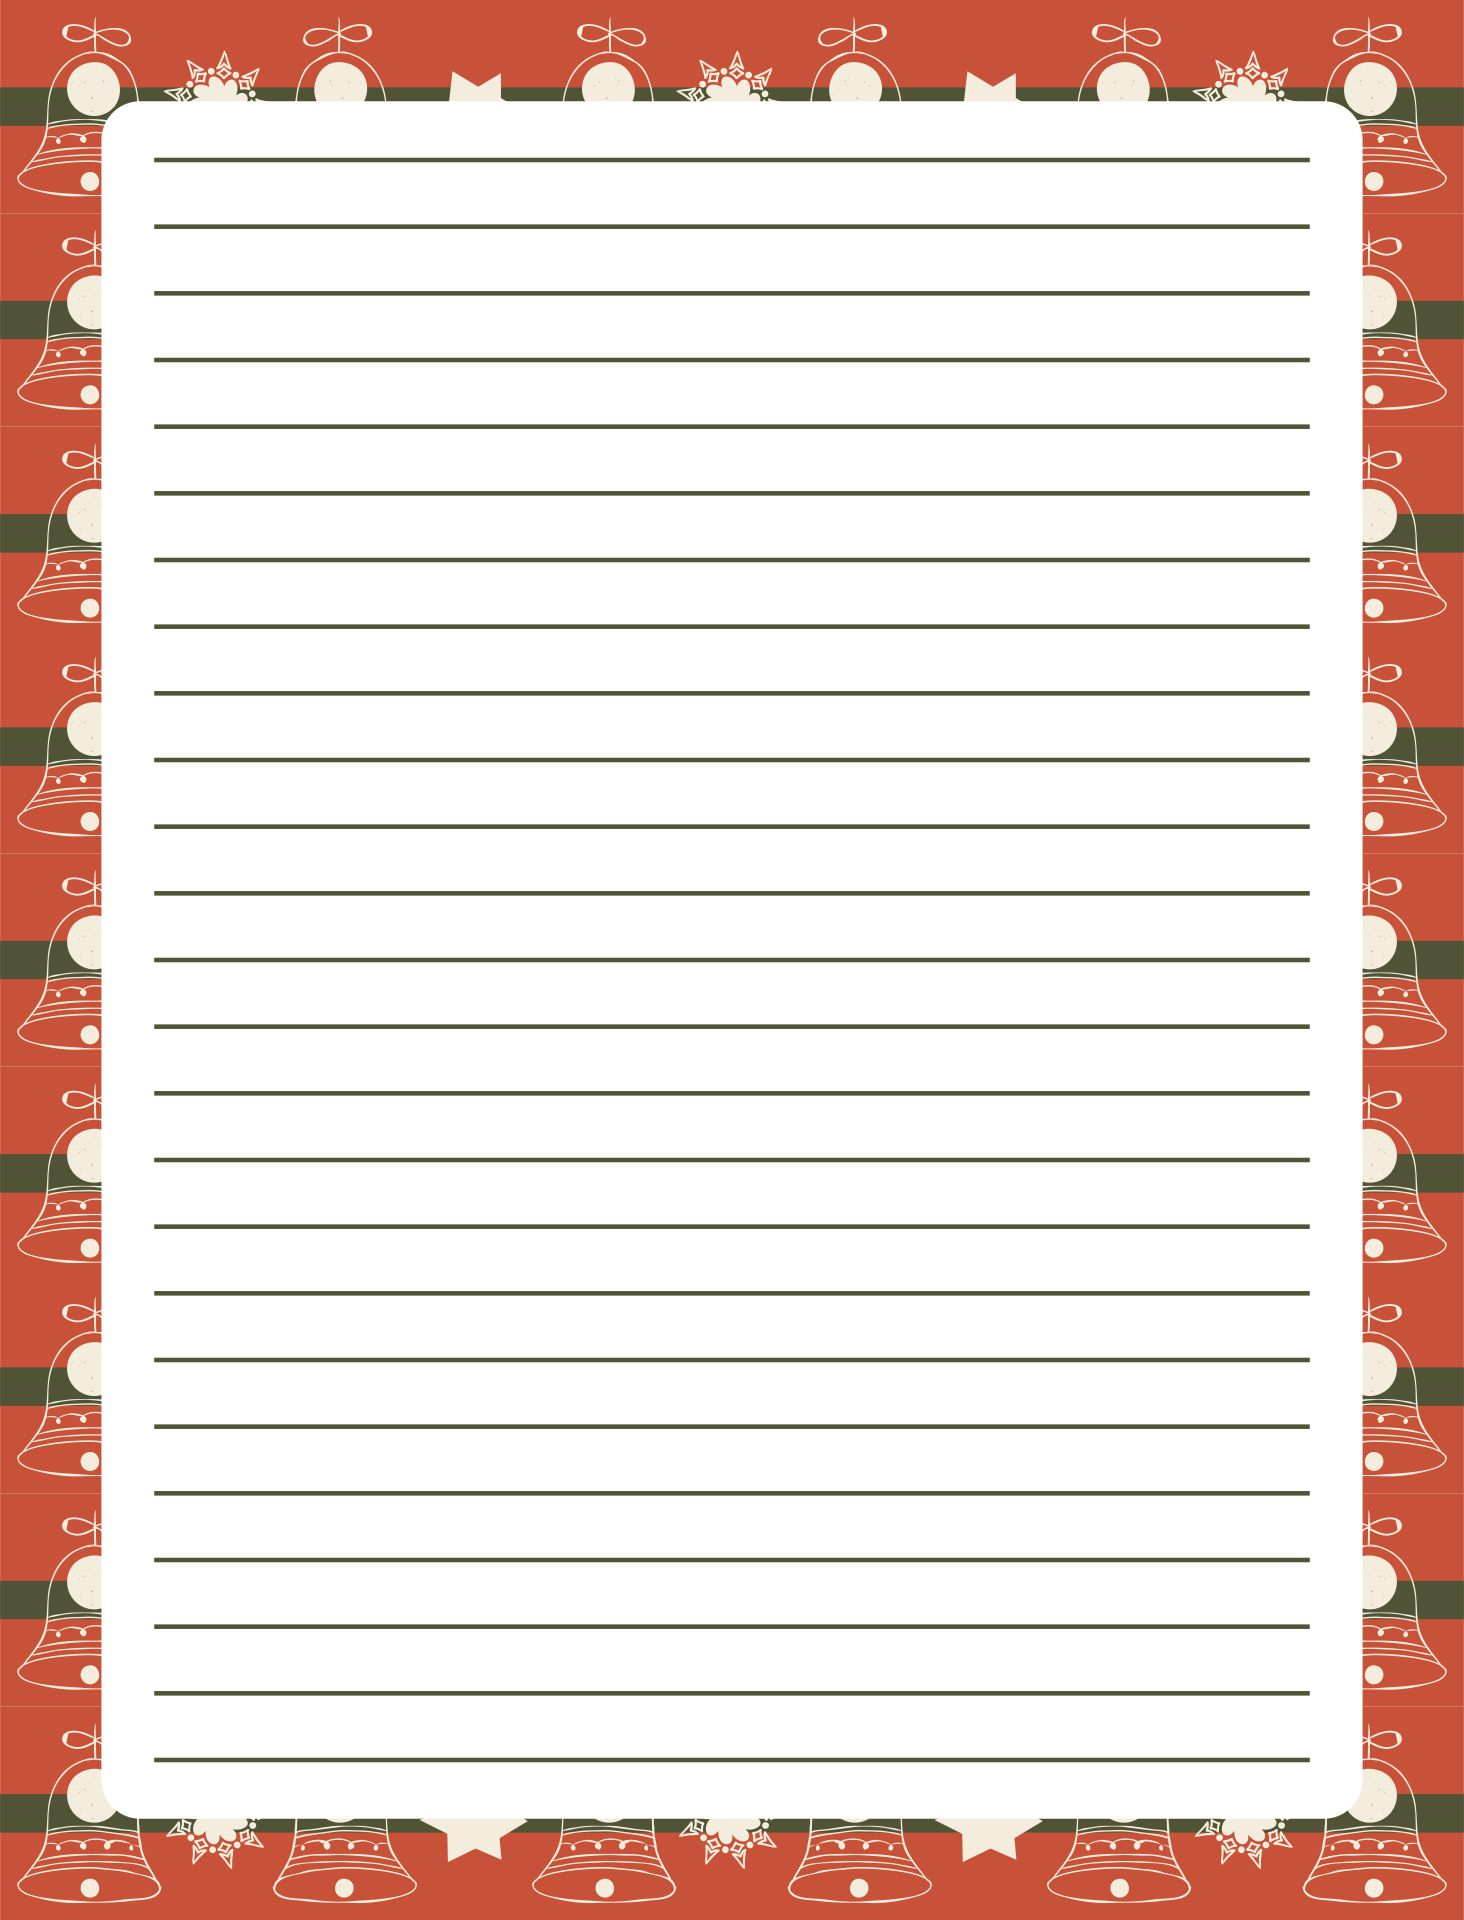 5 Images of Printable Christmas Border Writing Paper